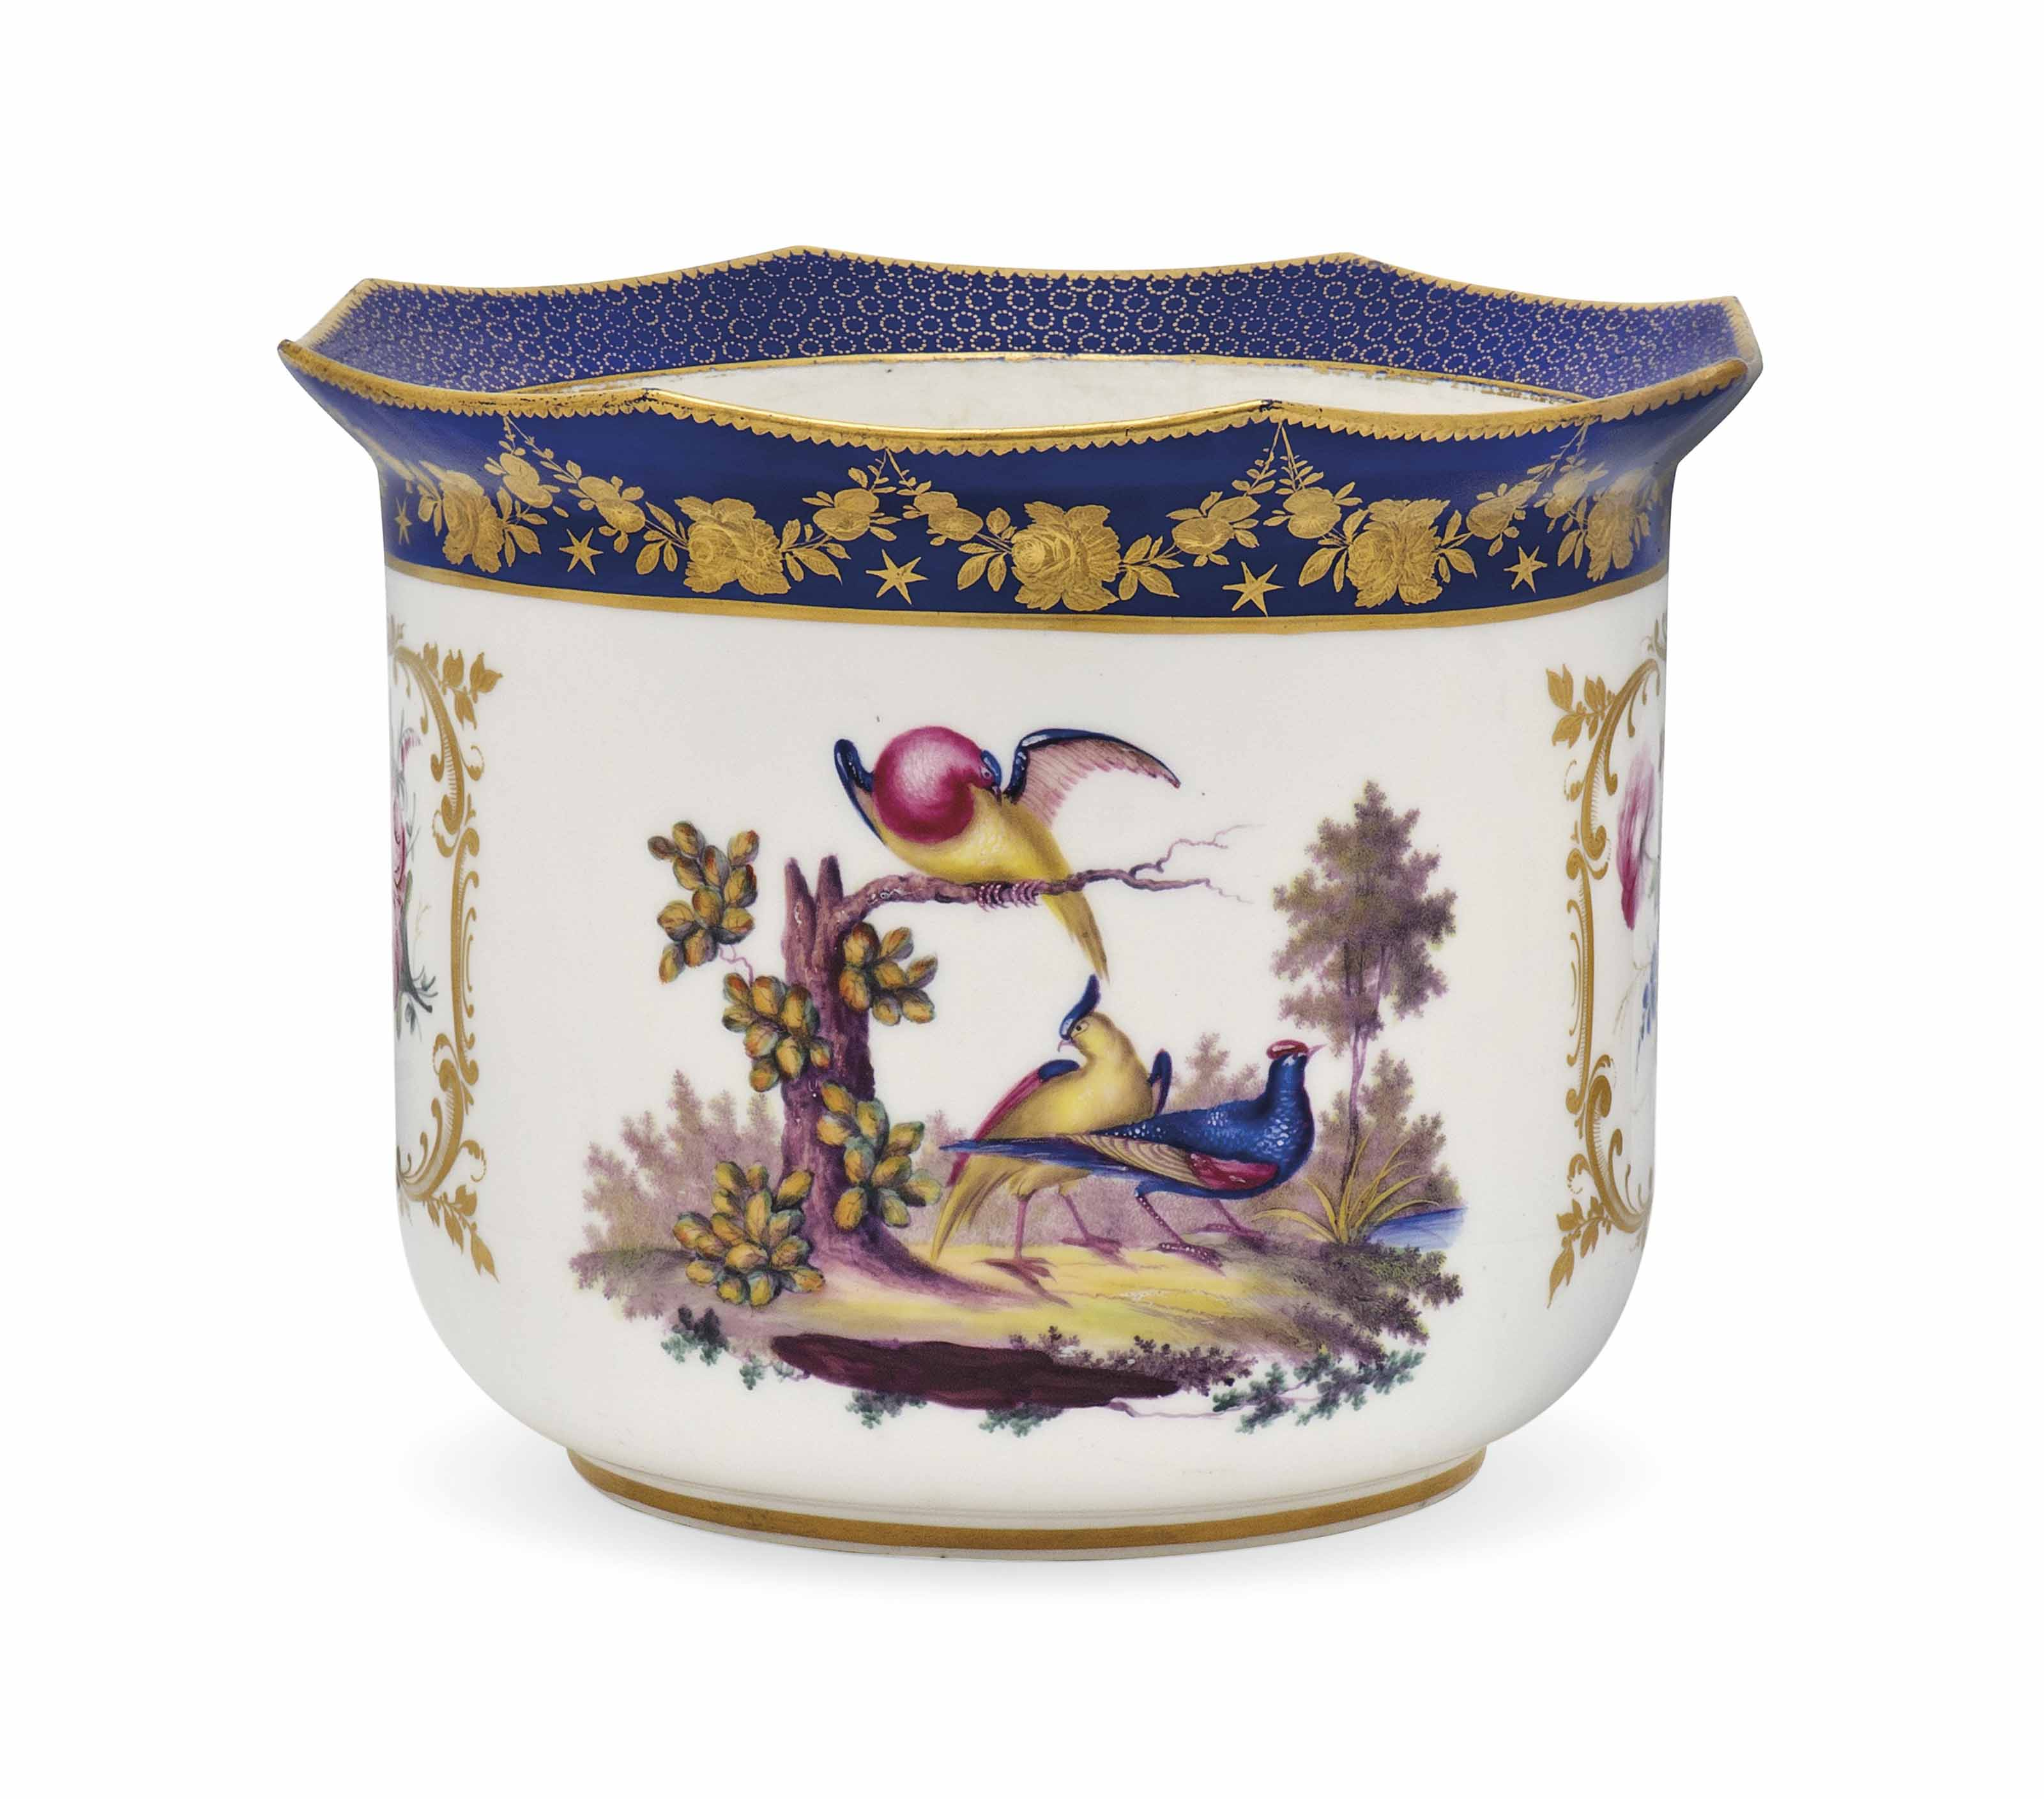 A SEVRES-STYLE MORTIER